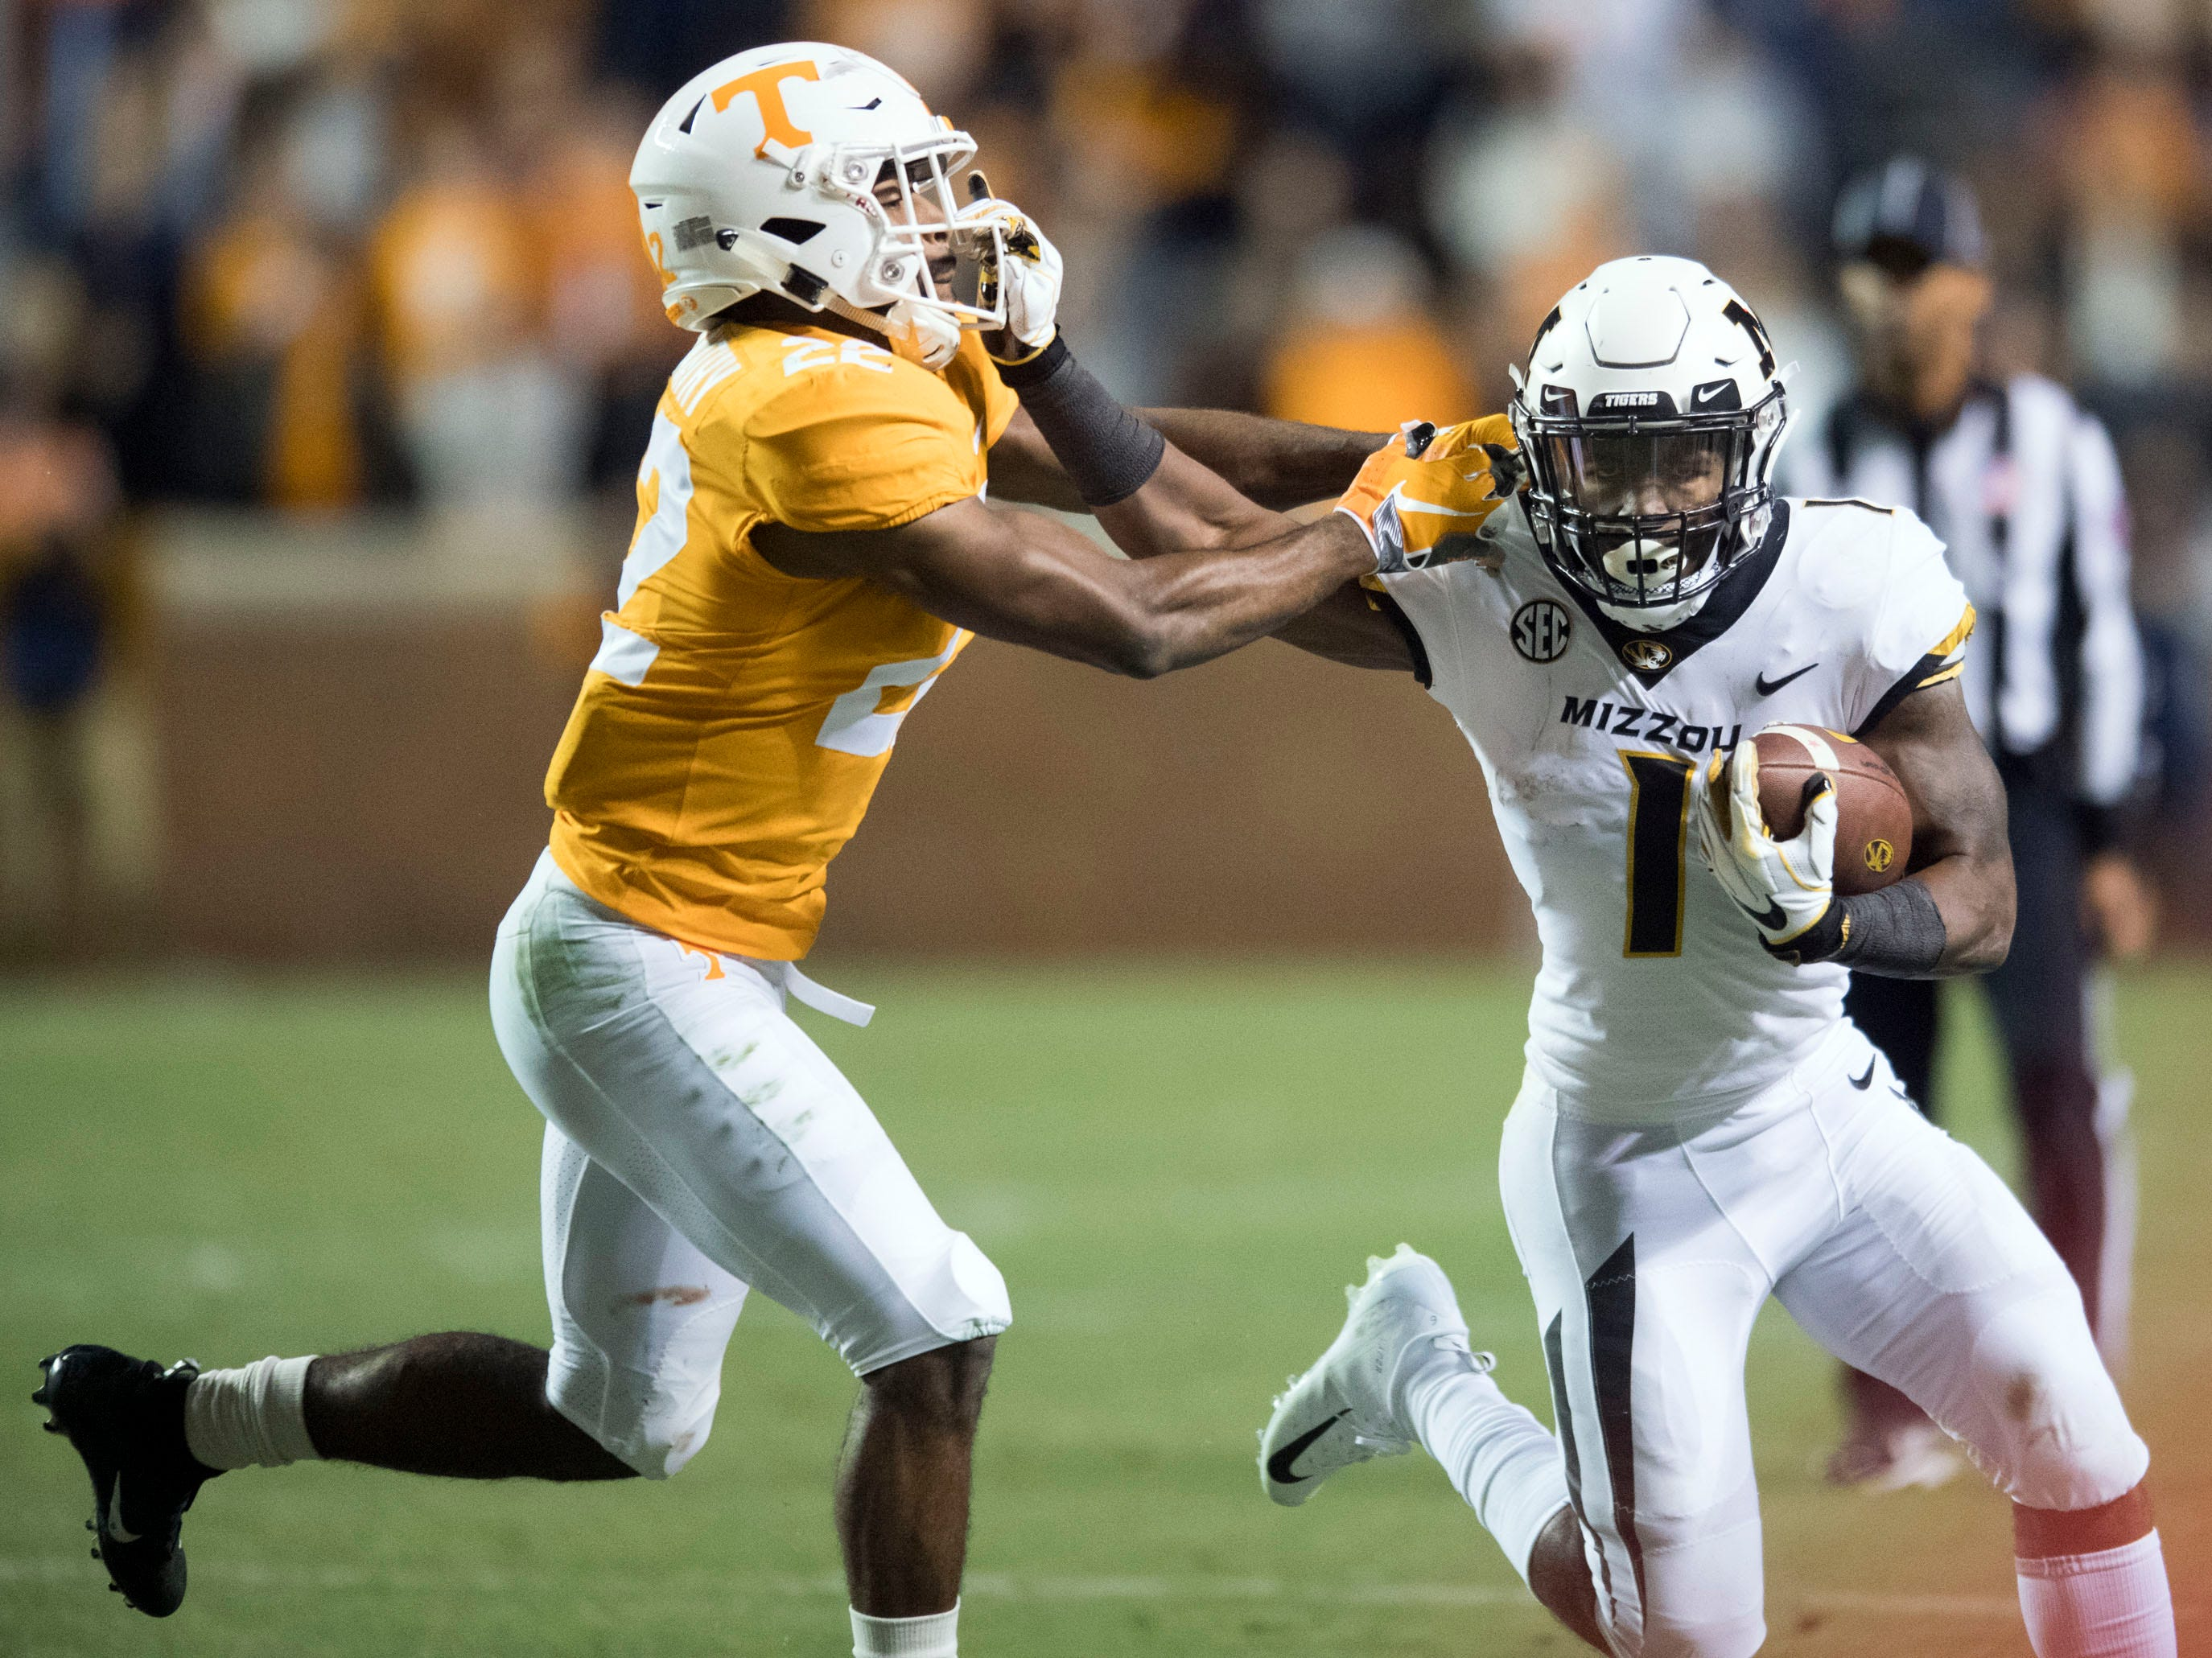 Missouri running back Tyler Badie (1) holds back Tennessee defensive back Micah Abernathy (22) during the game on Saturday, November 17, 2018.